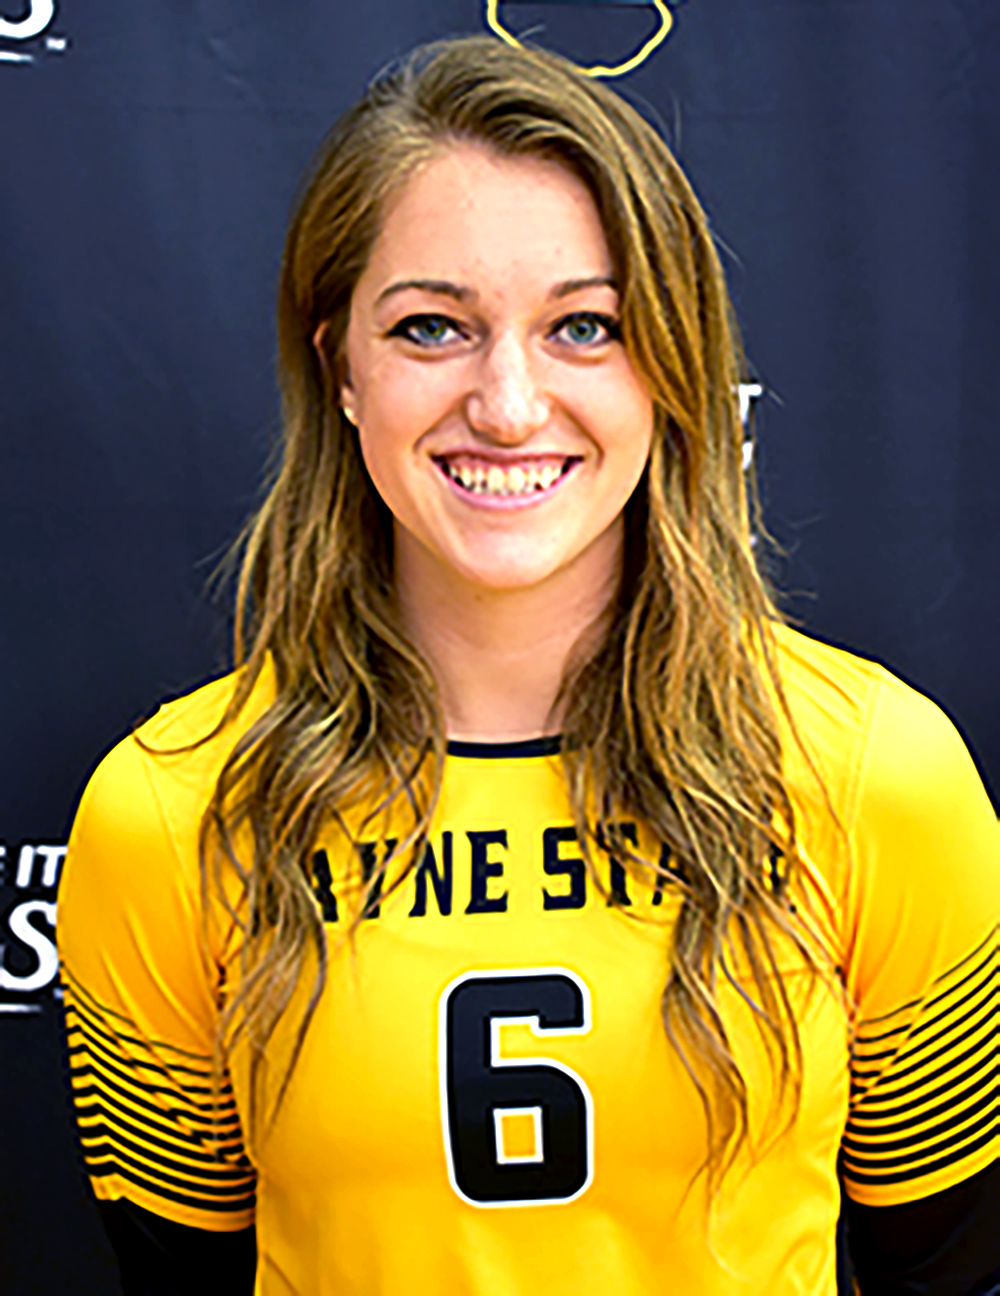 Senior setter Megan Gebhardt was selected as the Player to Watch in the NSIC this season. Photo courtesy of WSC.